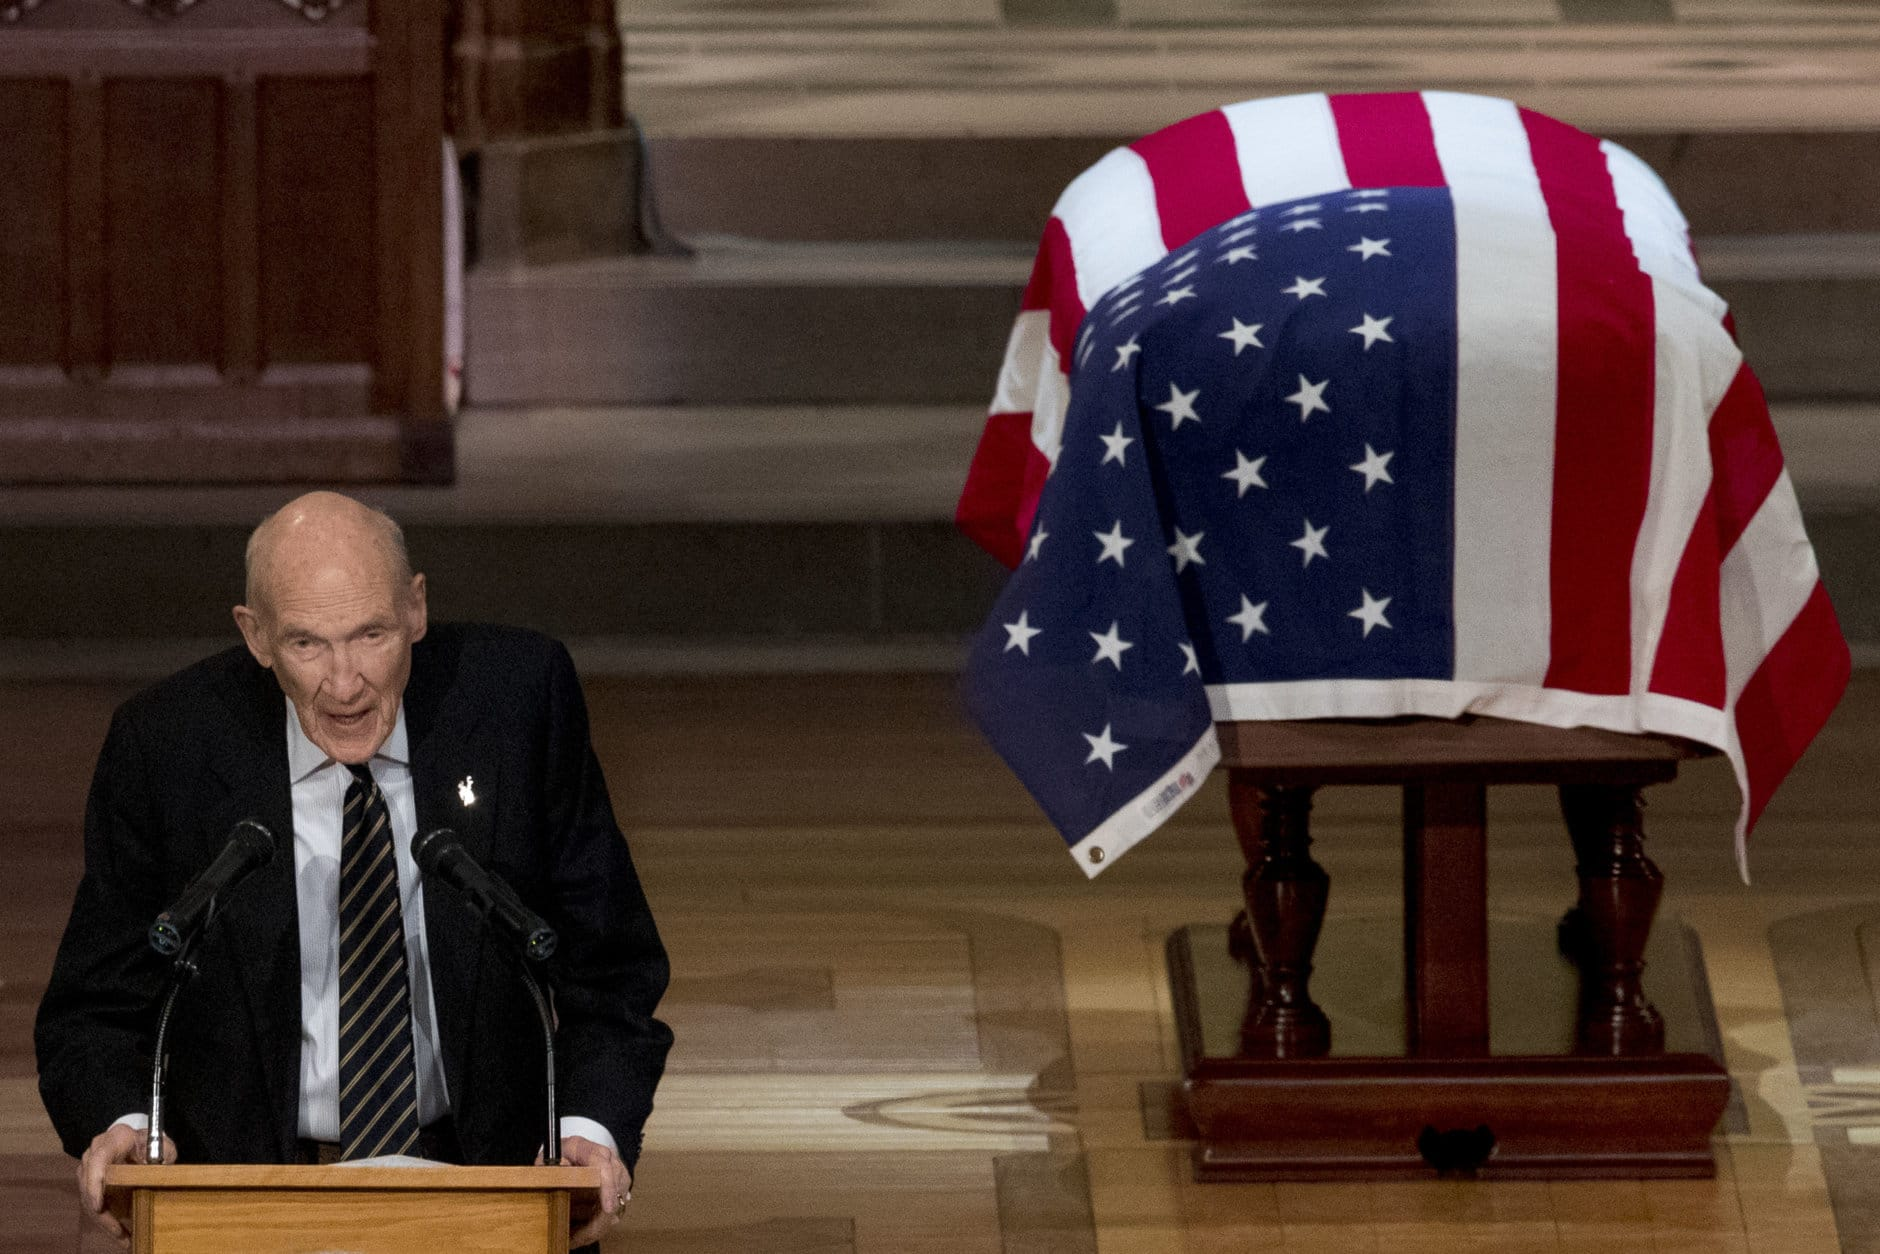 Former Sen. Alan Simpson, R-Wyo, speaks during the State Funeral for former President George H.W. Bush at the National Cathedral, December 5, 2018 in Washington, DC. President Bush will be buried at his final resting place at the George H.W. Bush Presidential Library at Texas A&M University in College Station, Texas. A WWII combat veteran, Bush served as a member of Congress from Texas, ambassador to the United Nations, director of the CIA, vice president and 41st president of the United States. (Photo by Andrew Harnik-Pool/Getty Images)